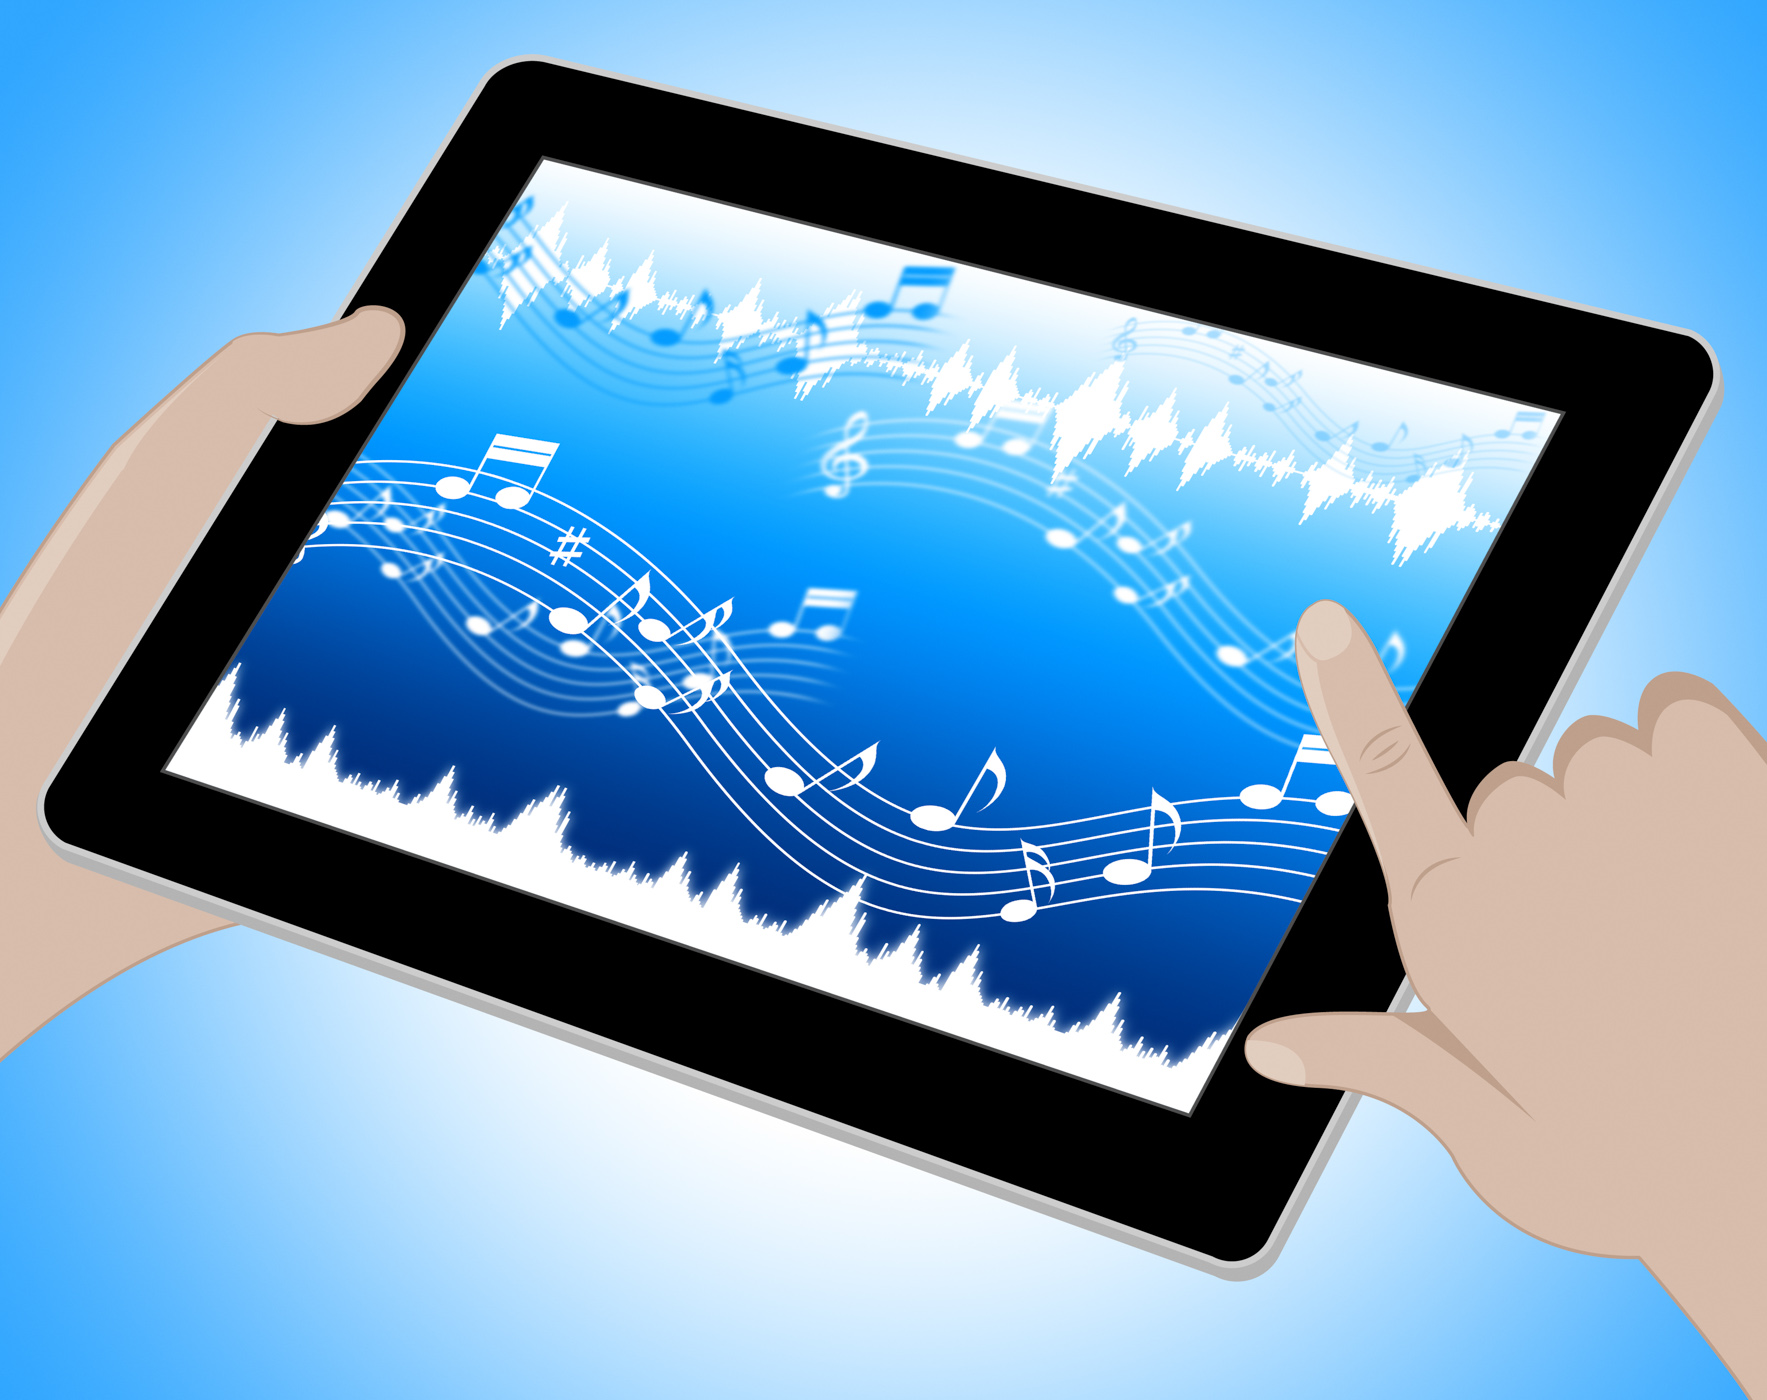 Music indicates soundtracks on tablet 3d illustration photo